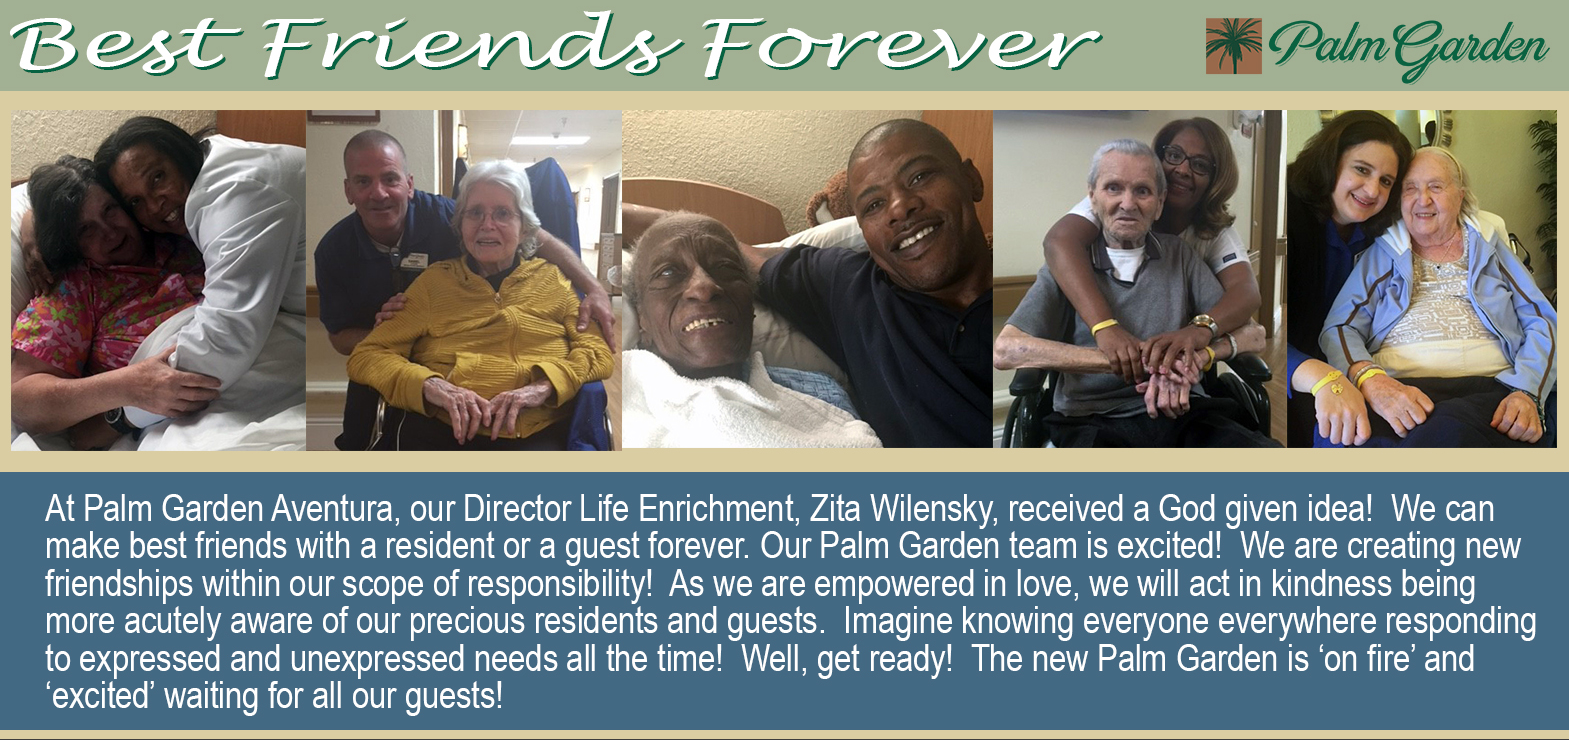 Zita, Life Enrichment Director started a BFF program where our residents and staff make friends forever